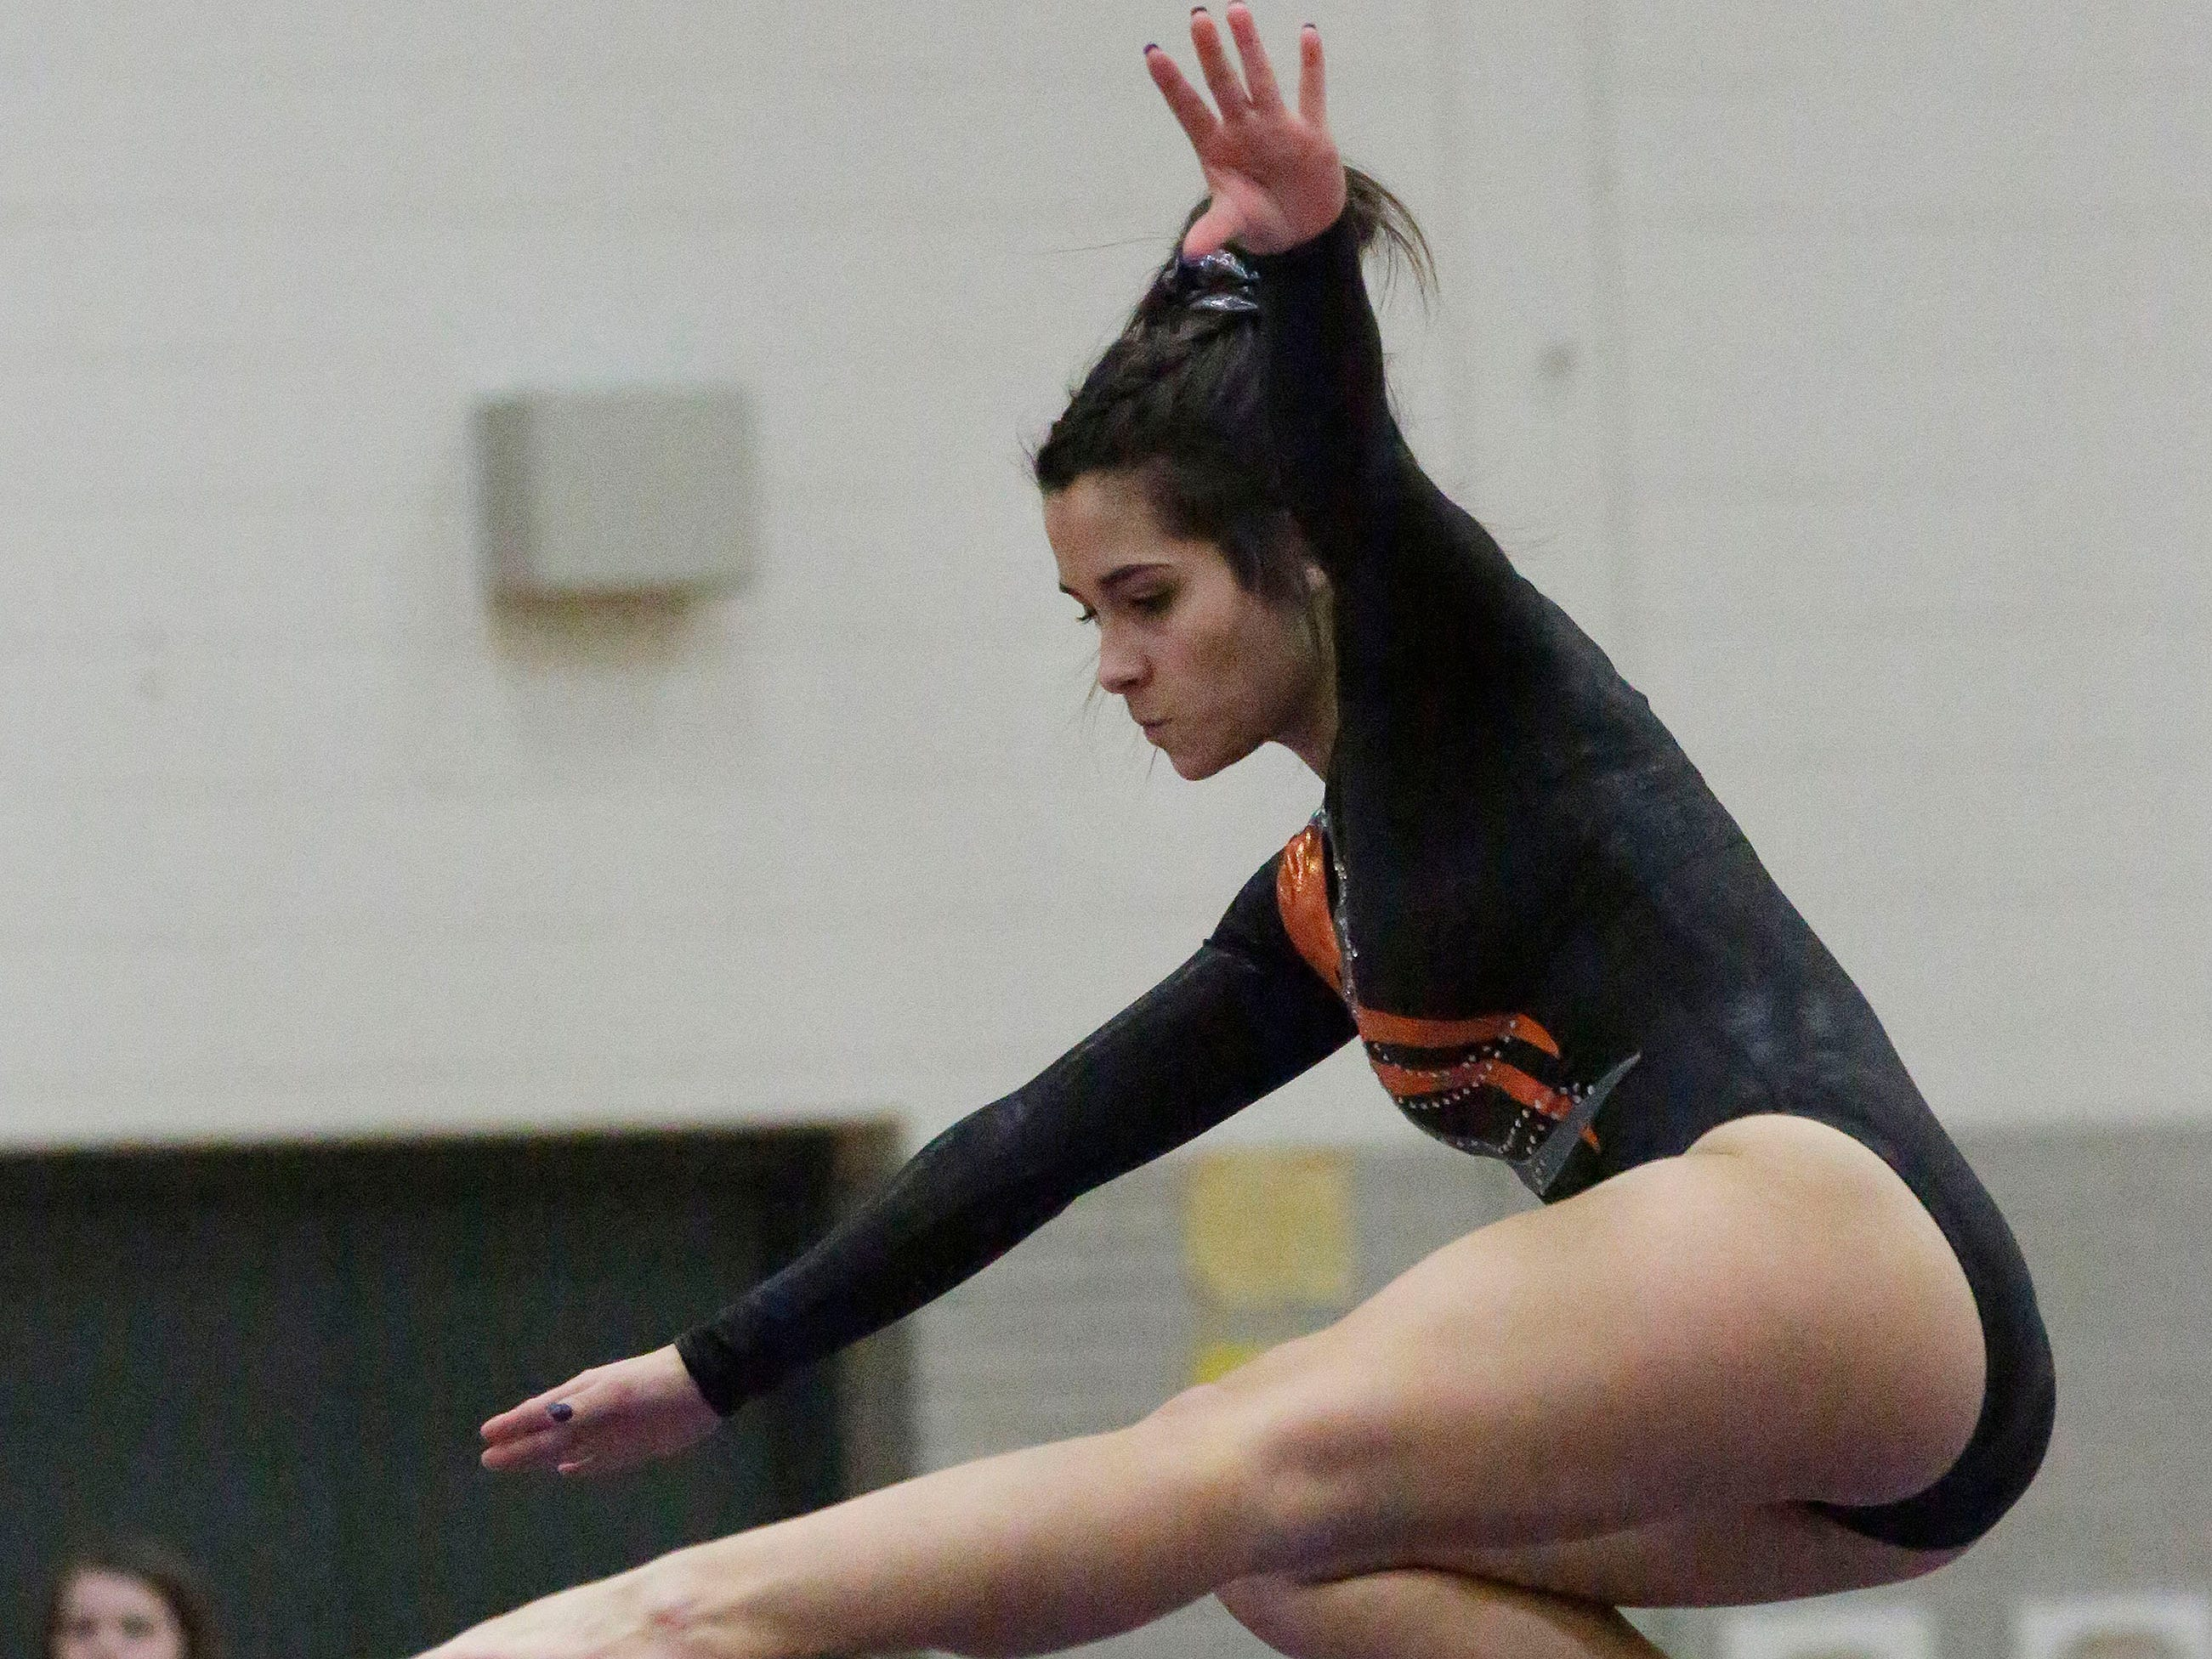 Kaukauna's Grace Moore works the balance beam during the WIAA Eastern Valley Conference Gymnastics Meet at Sheboygan South, Friday, February 15, 2019, in Sheboygan, Wis.